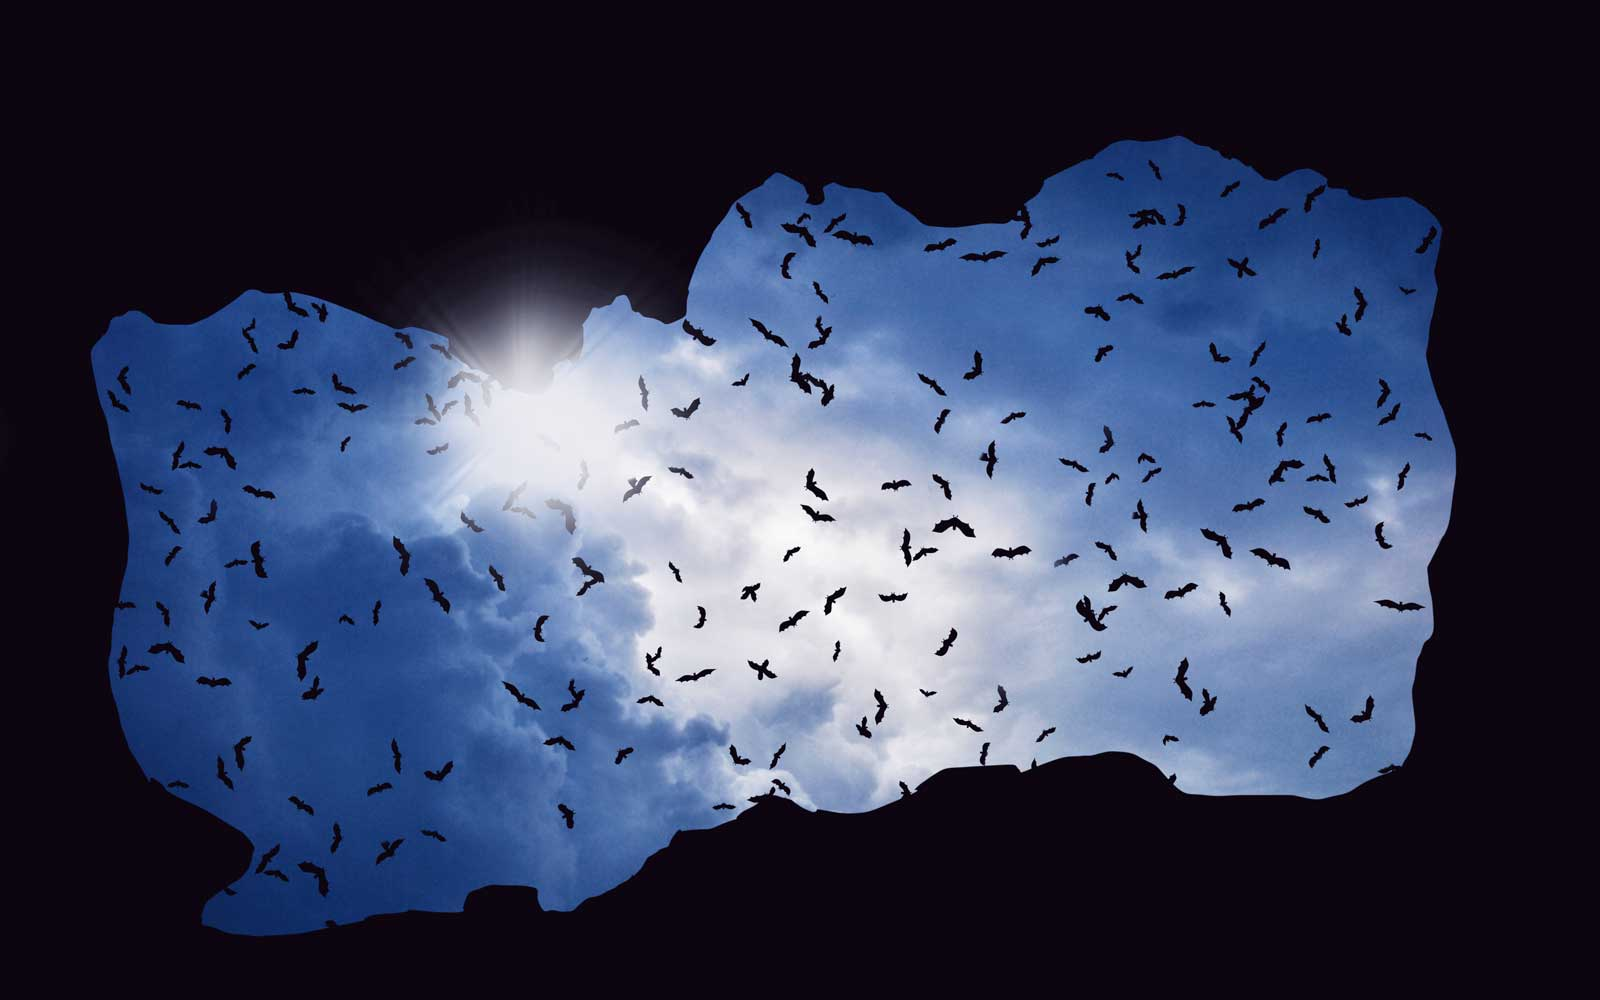 bats flying in the sky above cave